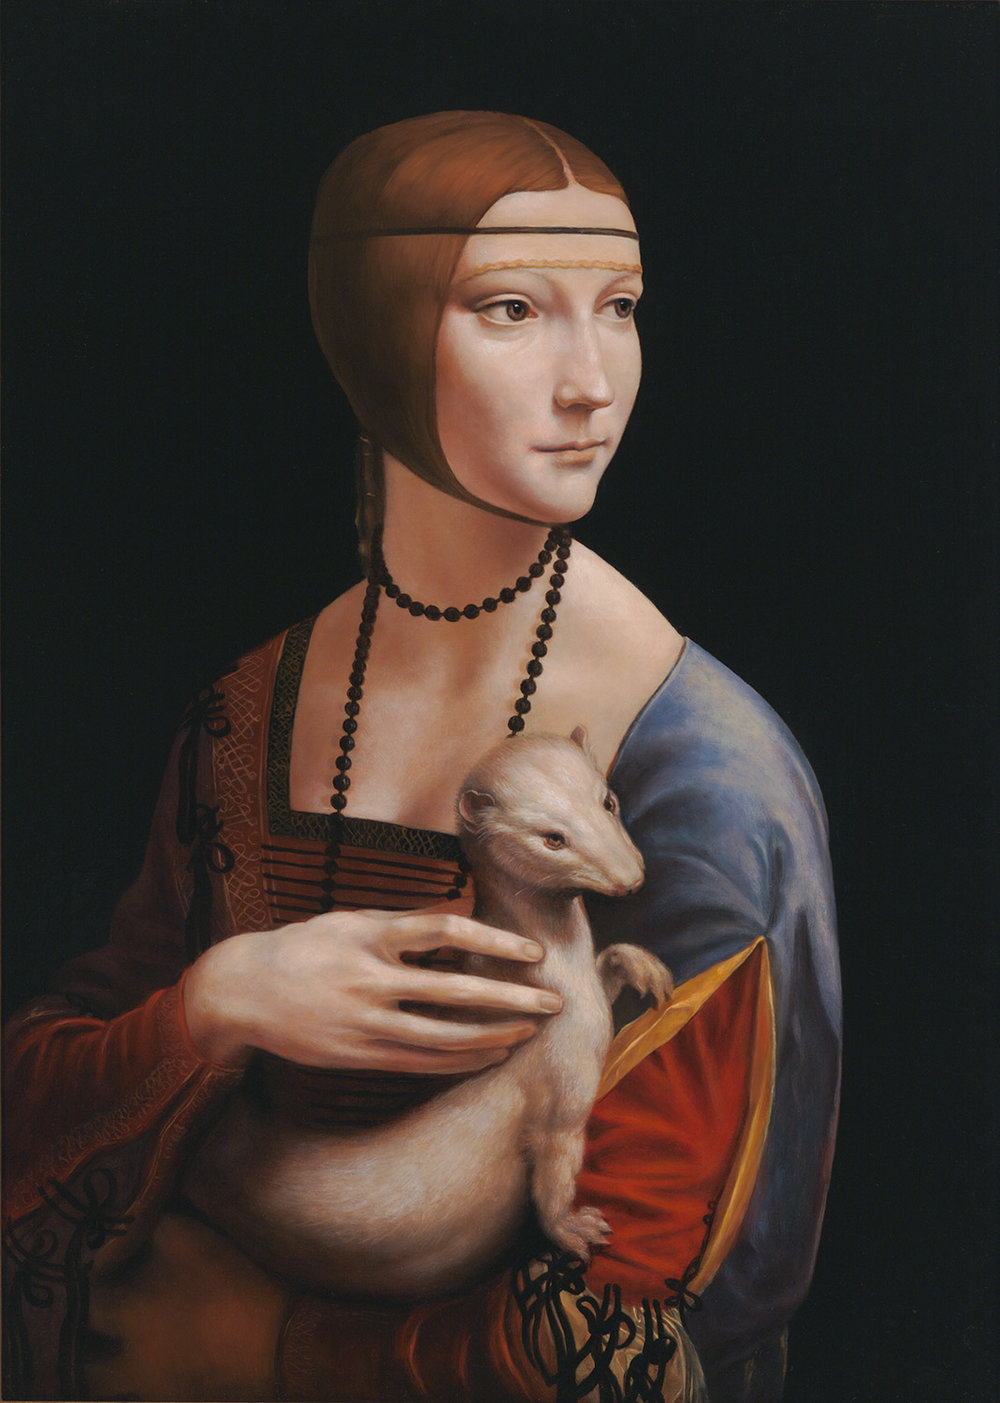 Master Copy of Leonardo da Vinci's Lady with an Ermine